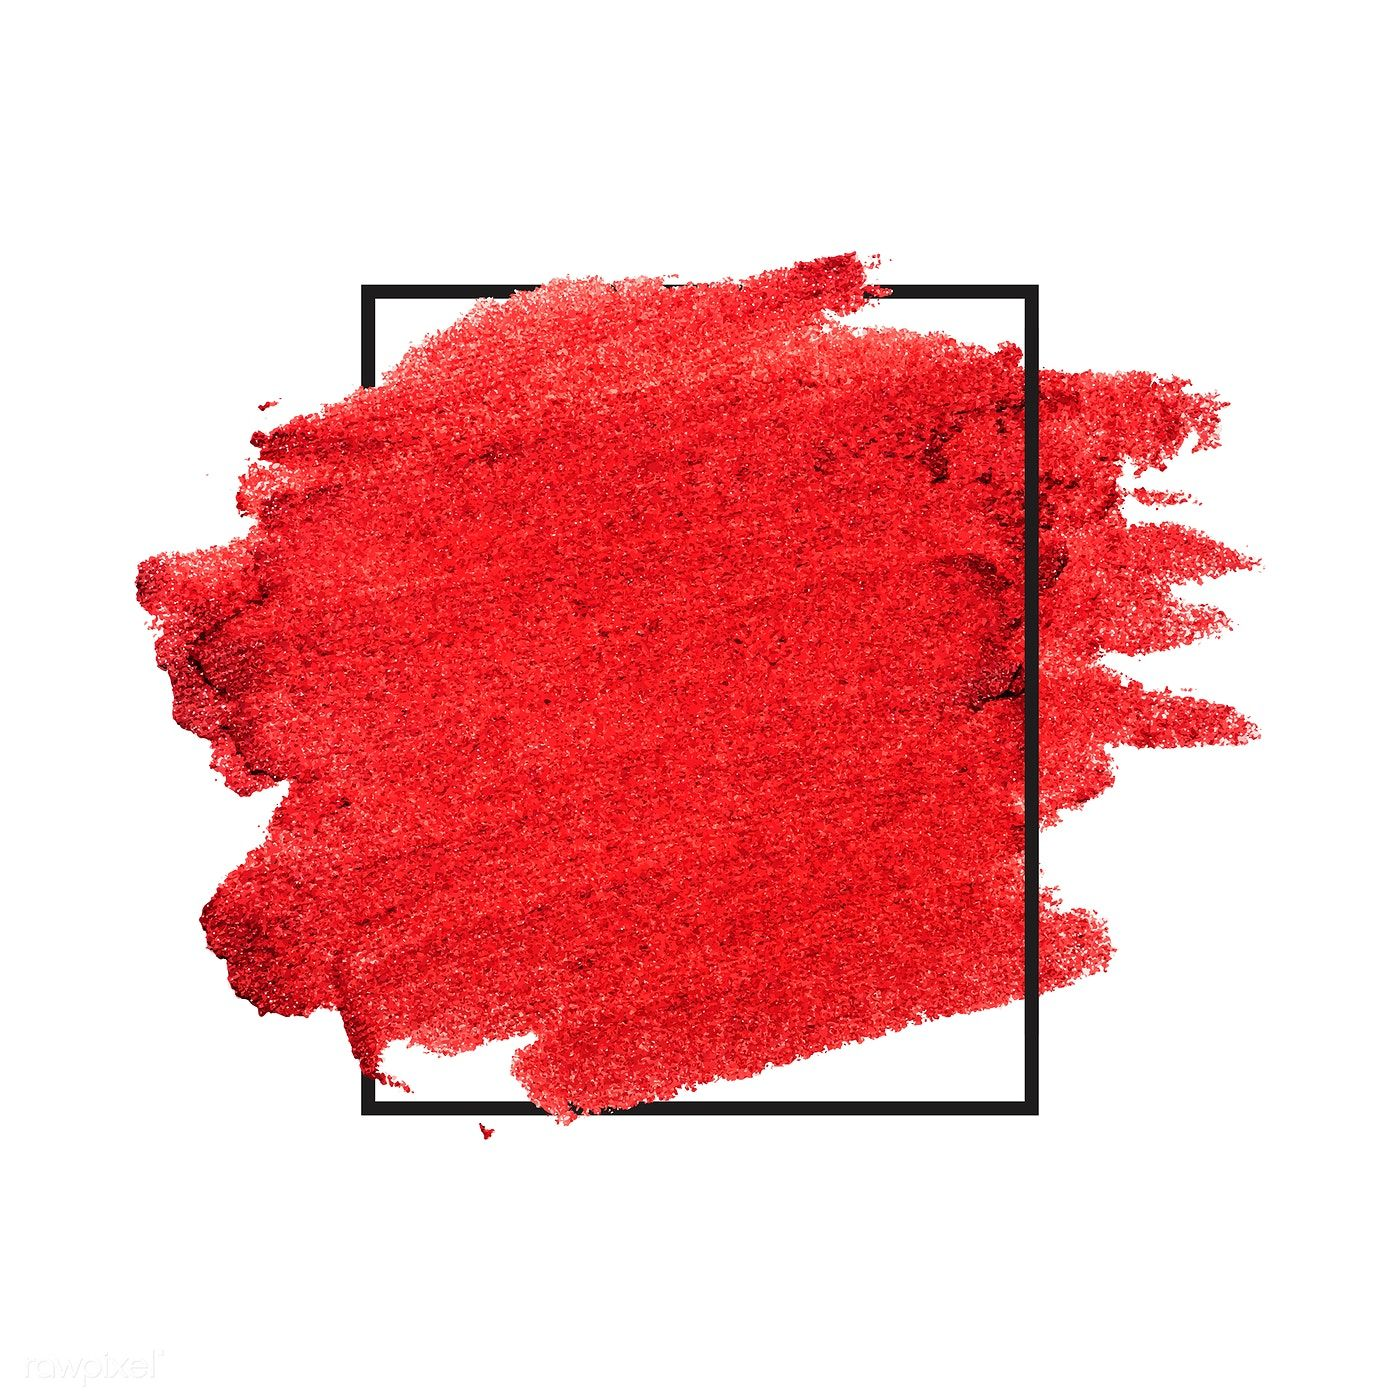 Red Brush Stroke Badge Vector Free Image By Rawpixel Com Ake Flower Background Wallpaper Poster Background Design Brush Strokes